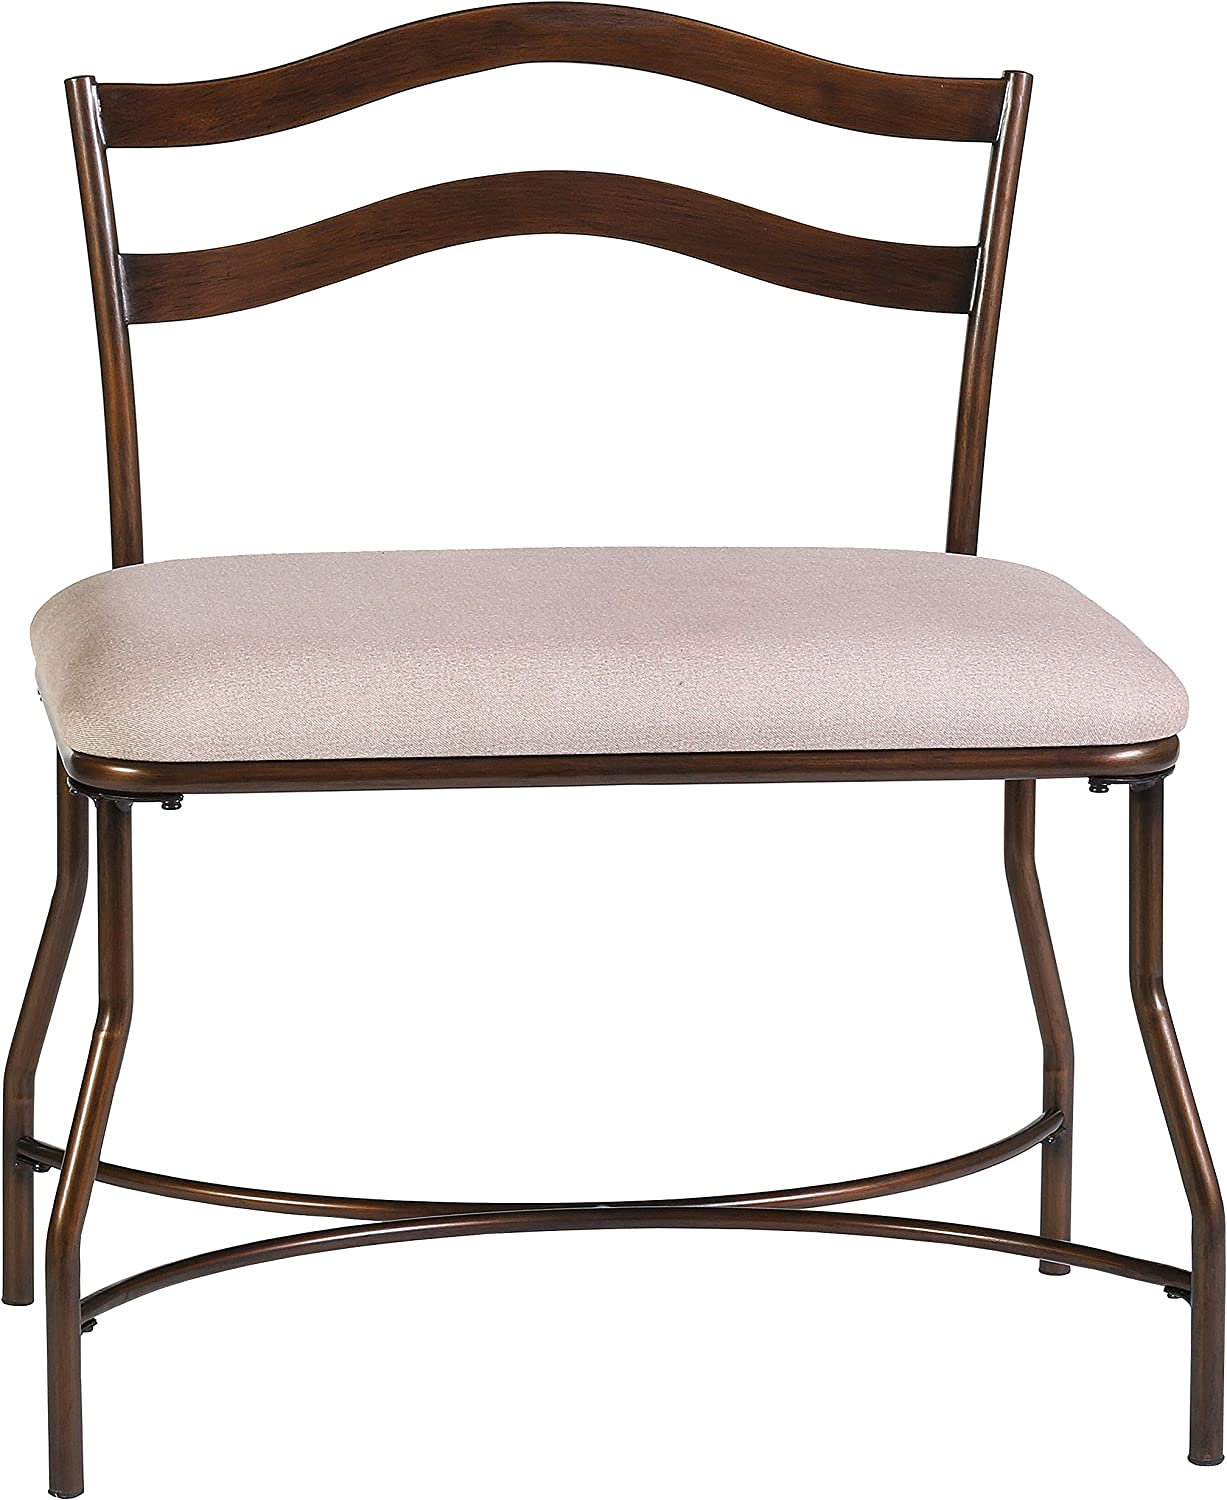 8. Hillsdale Windsor Vanity Chair